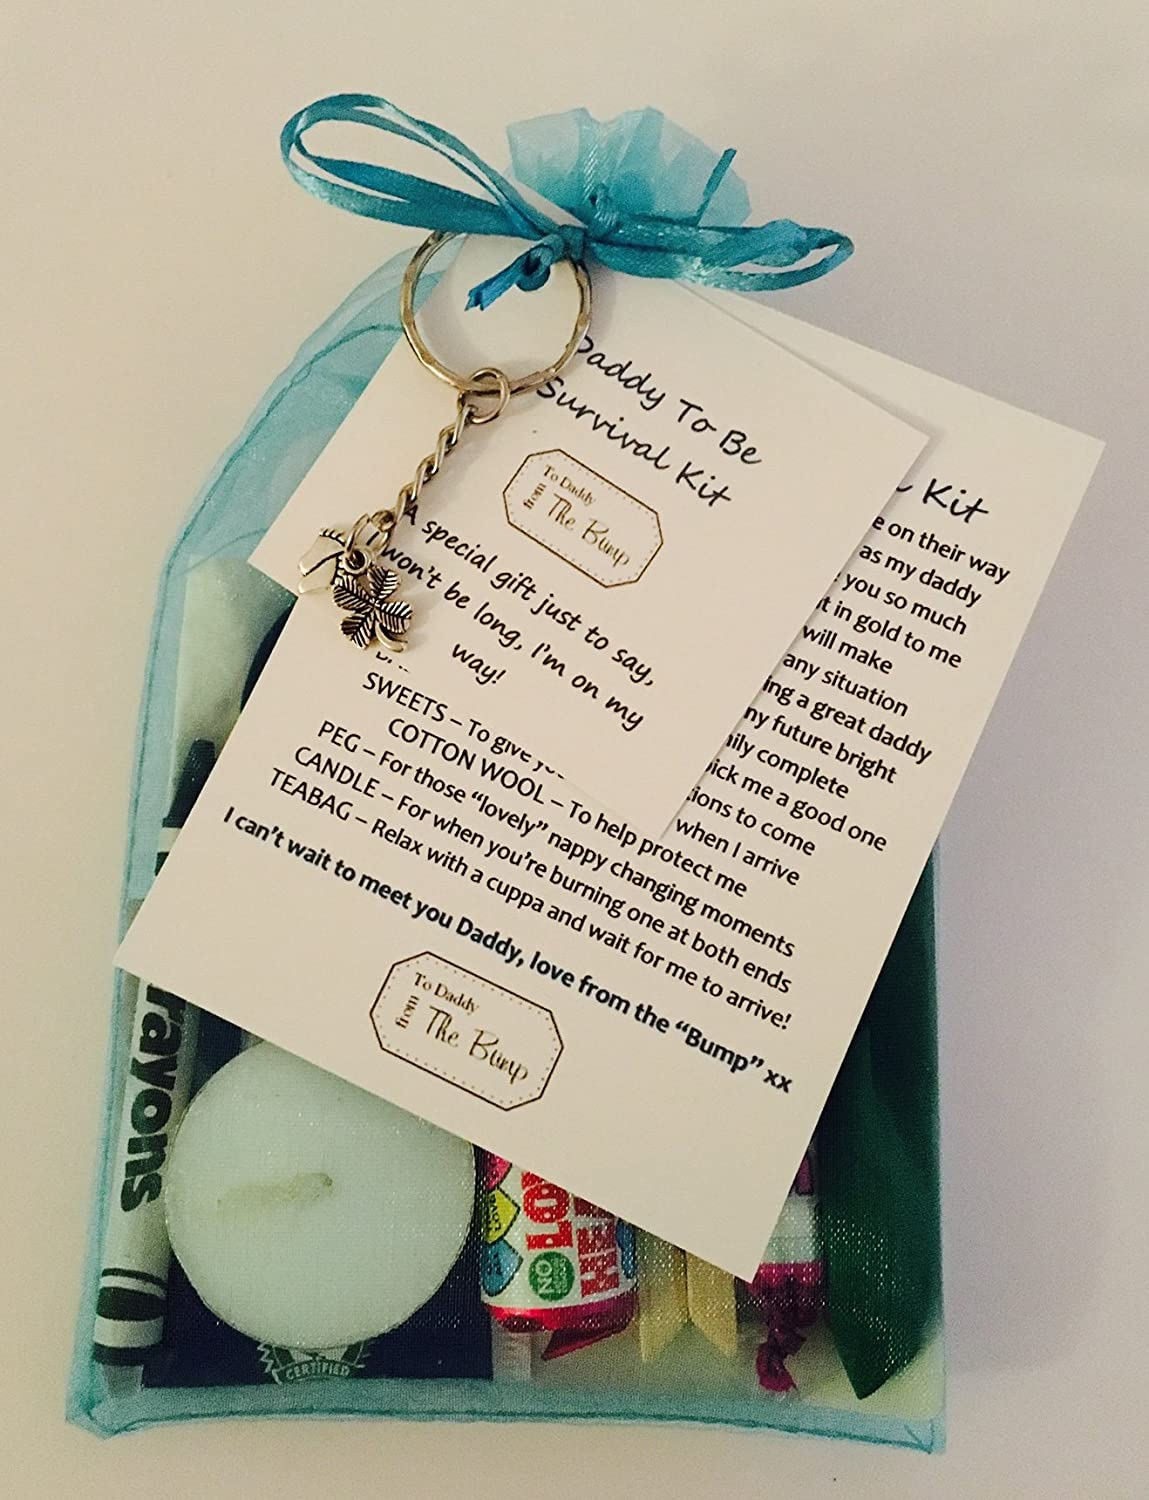 New Daddy To Be Survival Kit Card From The Baby Bump Fantastic Gift Present For Birthday Christmas Fathers Day Congratulations Great For Any Occasion Amazon Co Uk Kitchen Home